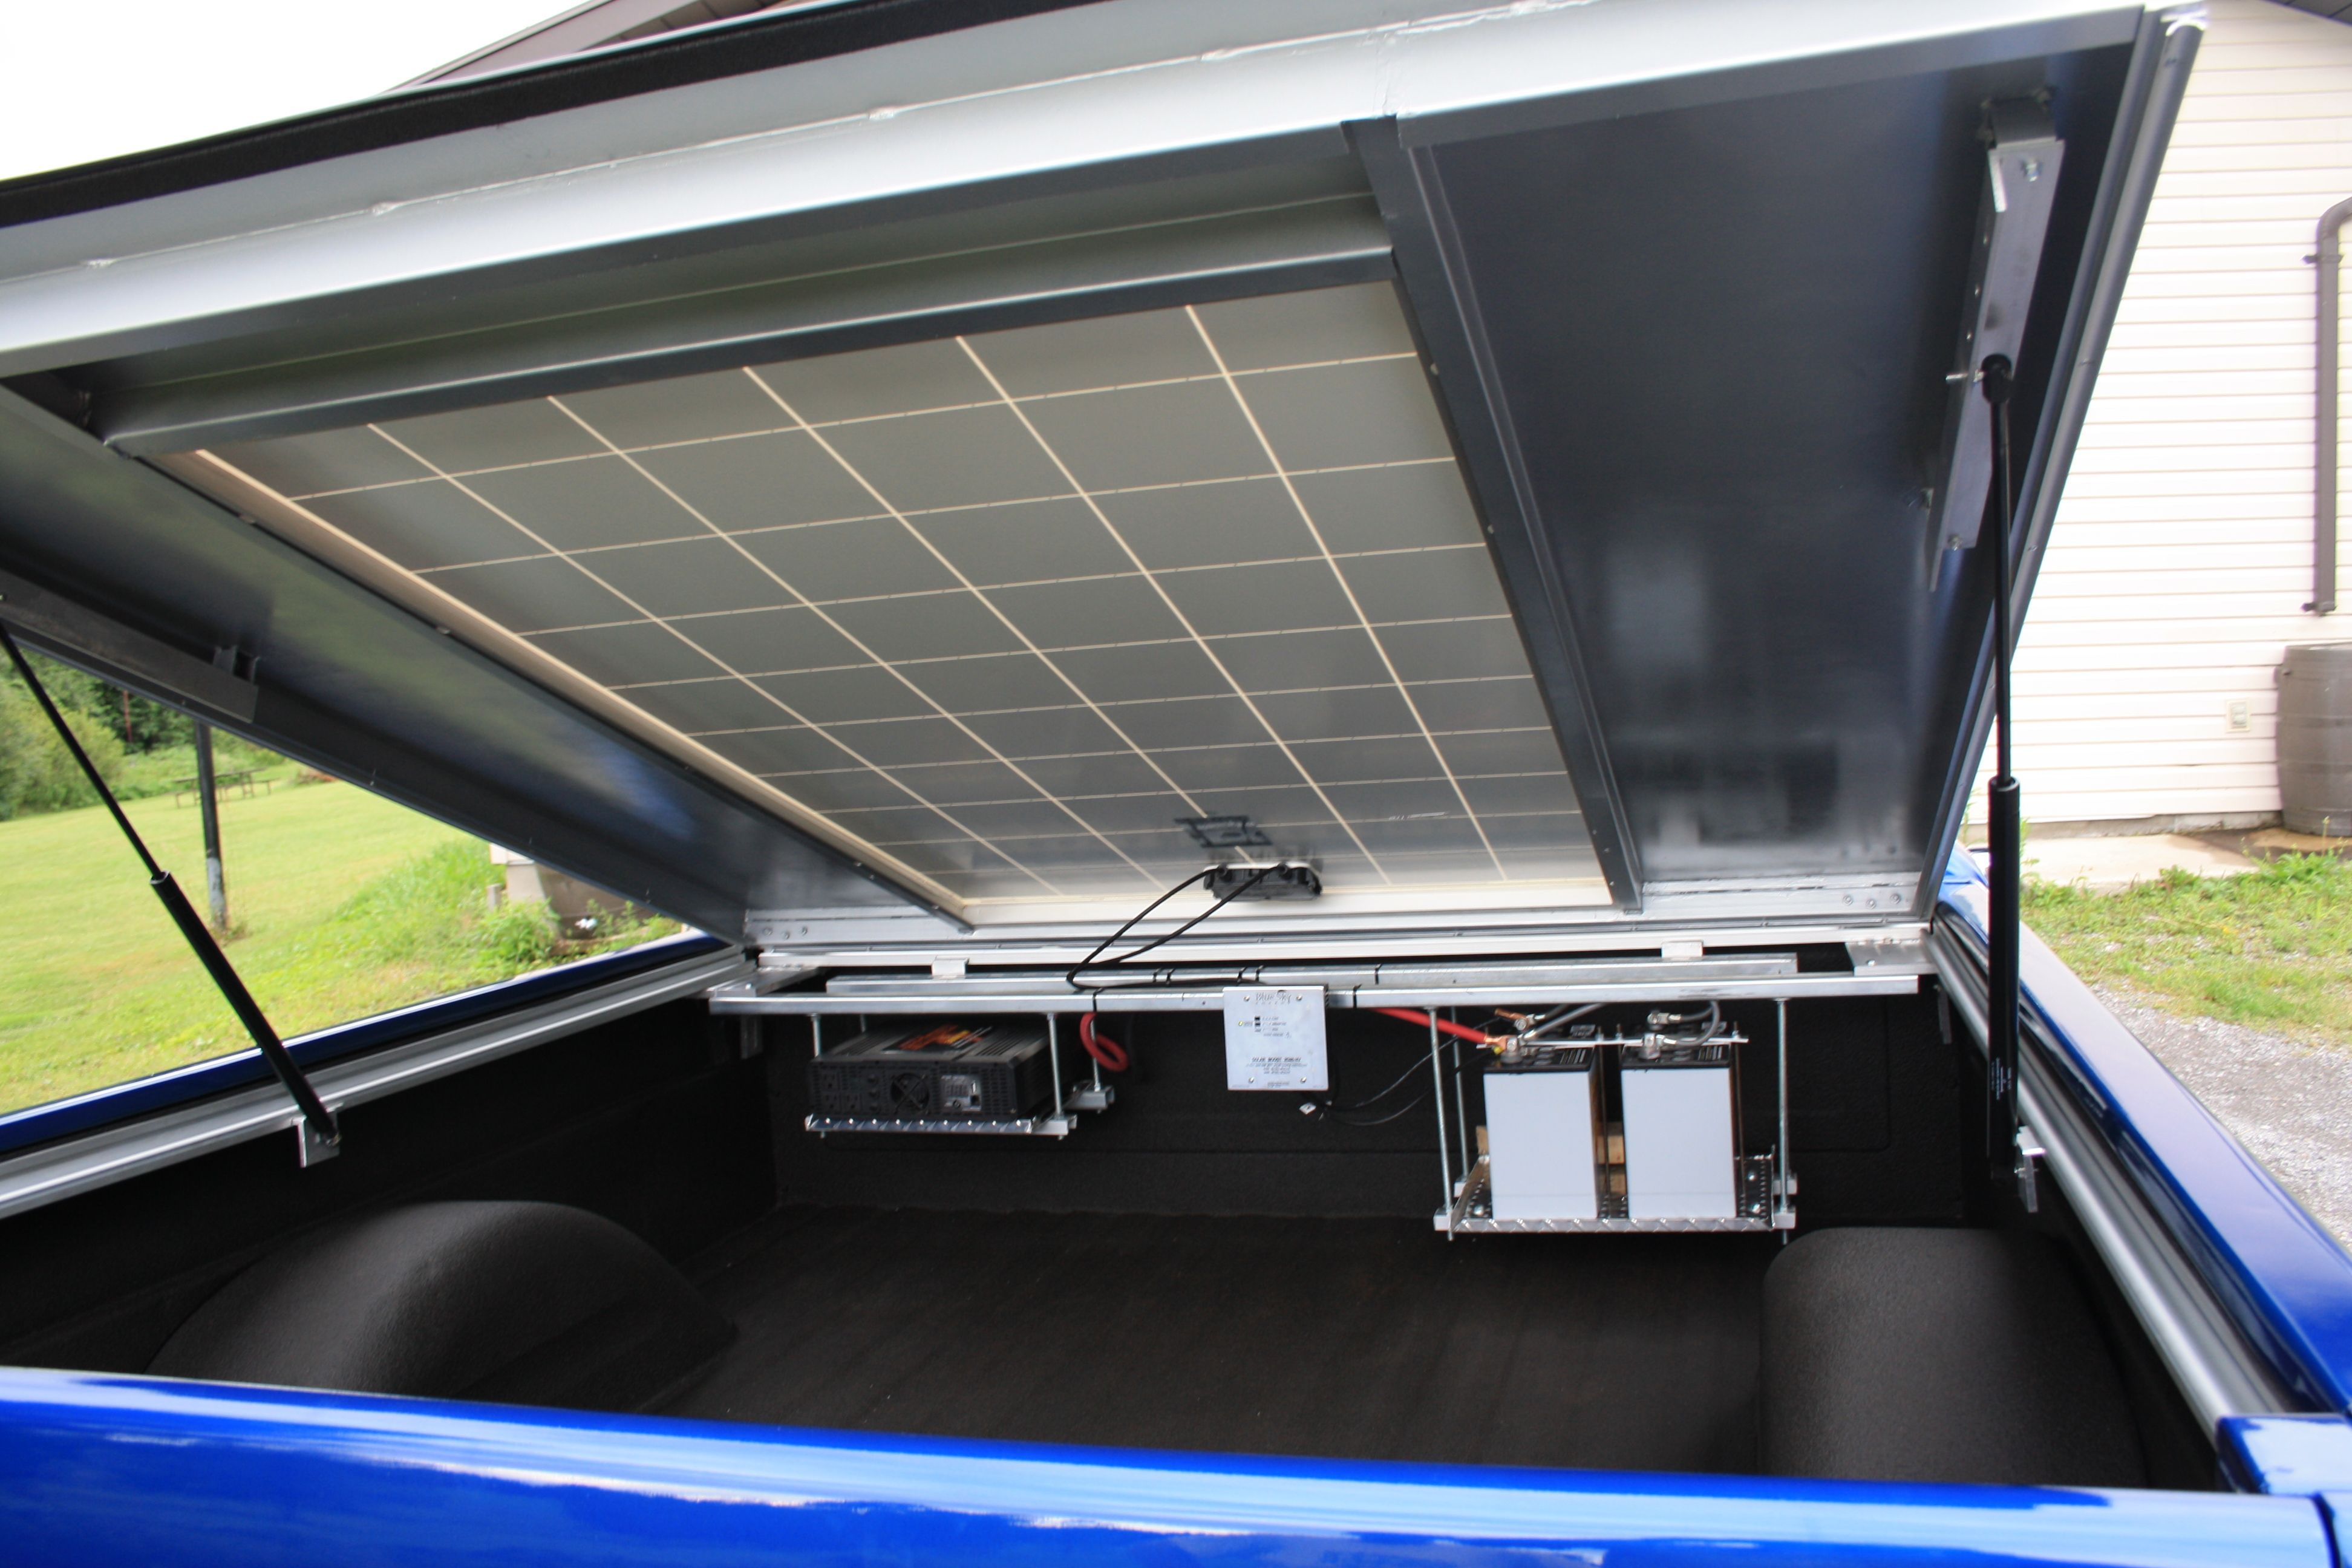 Inside Showing The Generating Side Of The Solar Tonnaeu Cover Tonneau Cover Energy Harvesting Solar